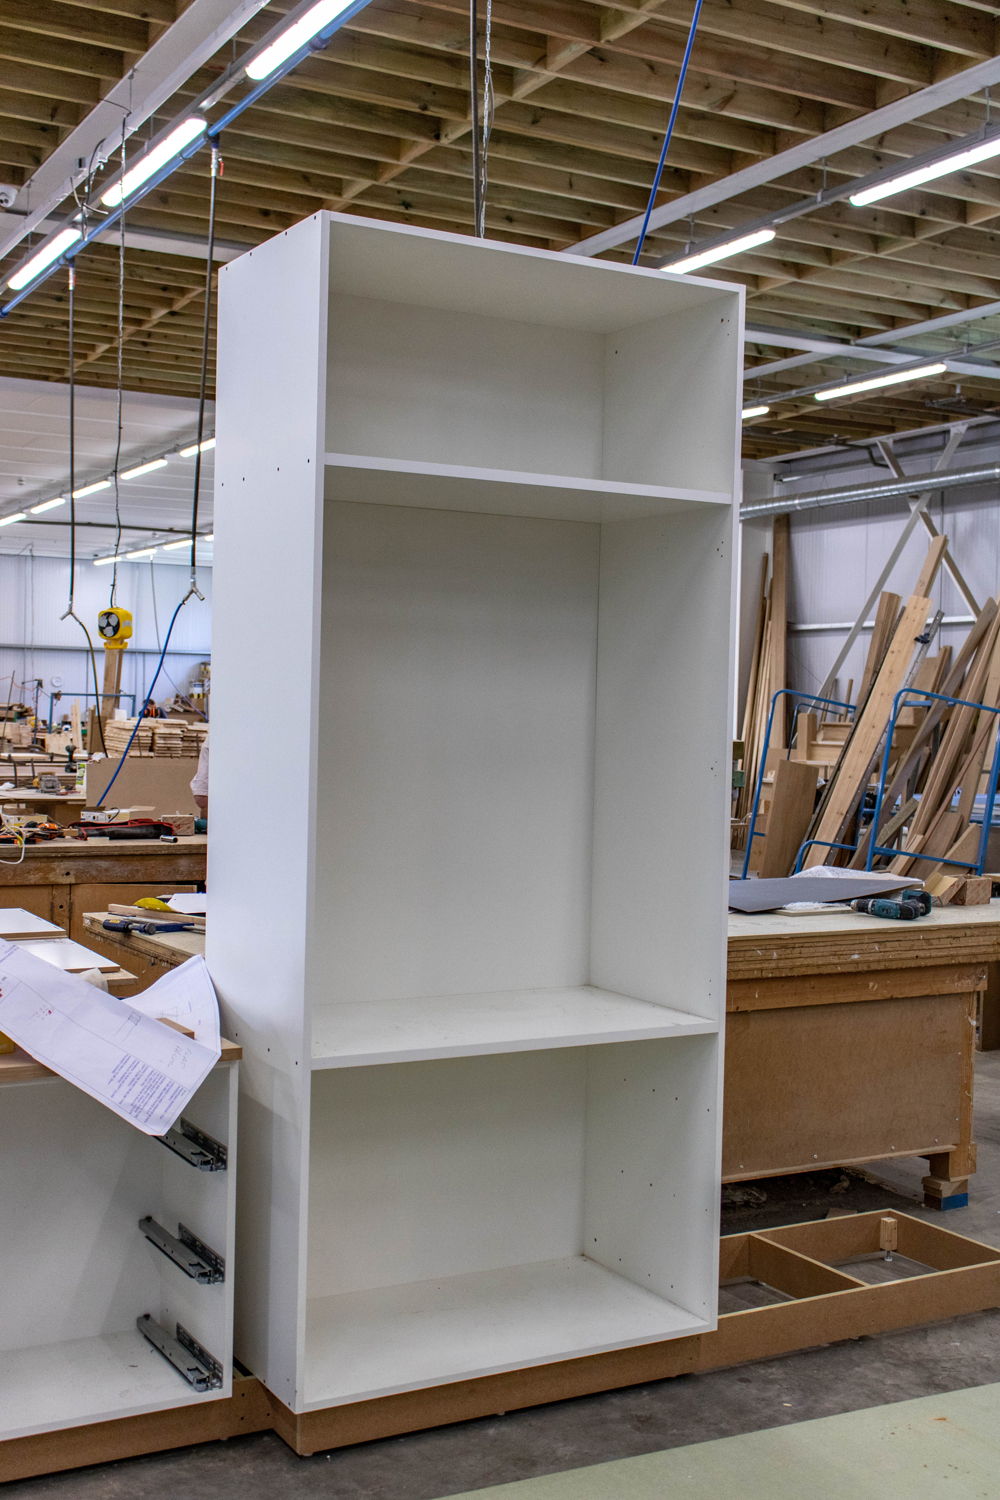 white wardrobe shelf unit in k&d joinery workshop